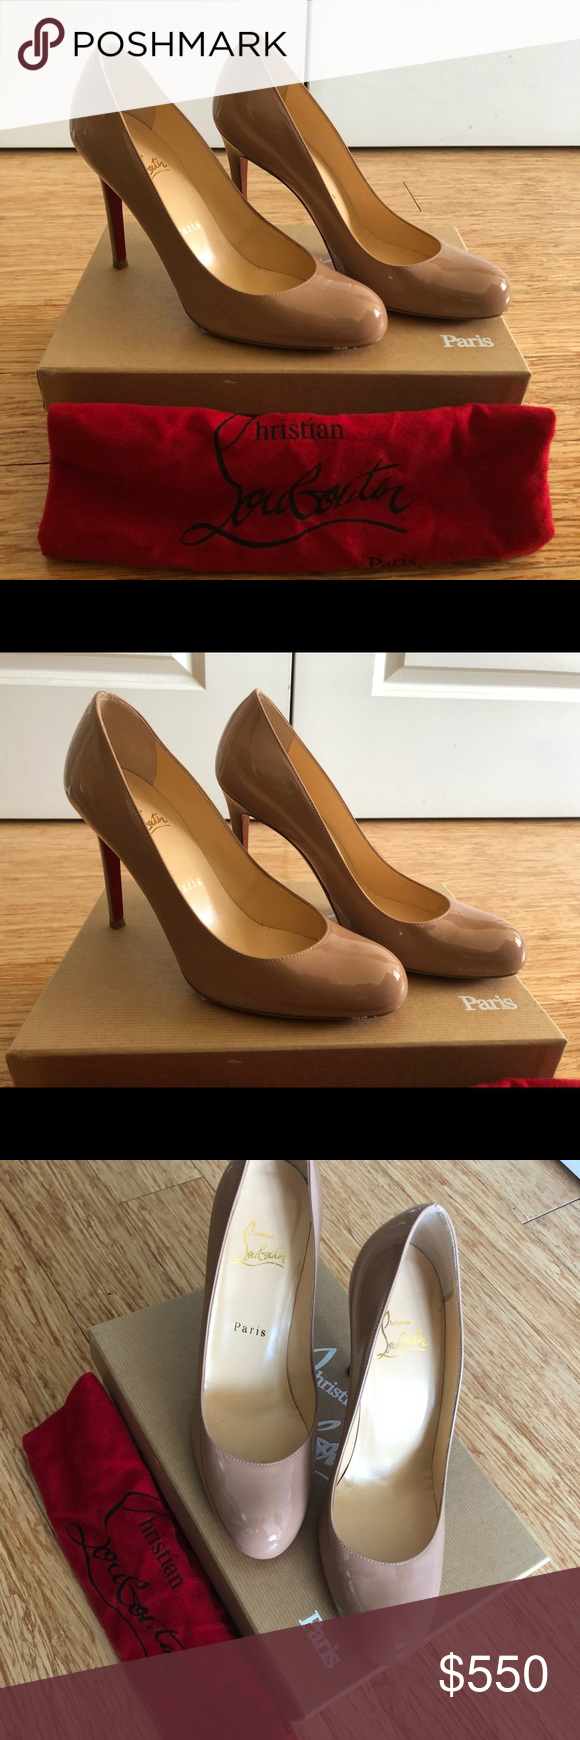 buy online 8808b 4b23d Christian Louboutin Simple Pump 100 Patent Authentic ...